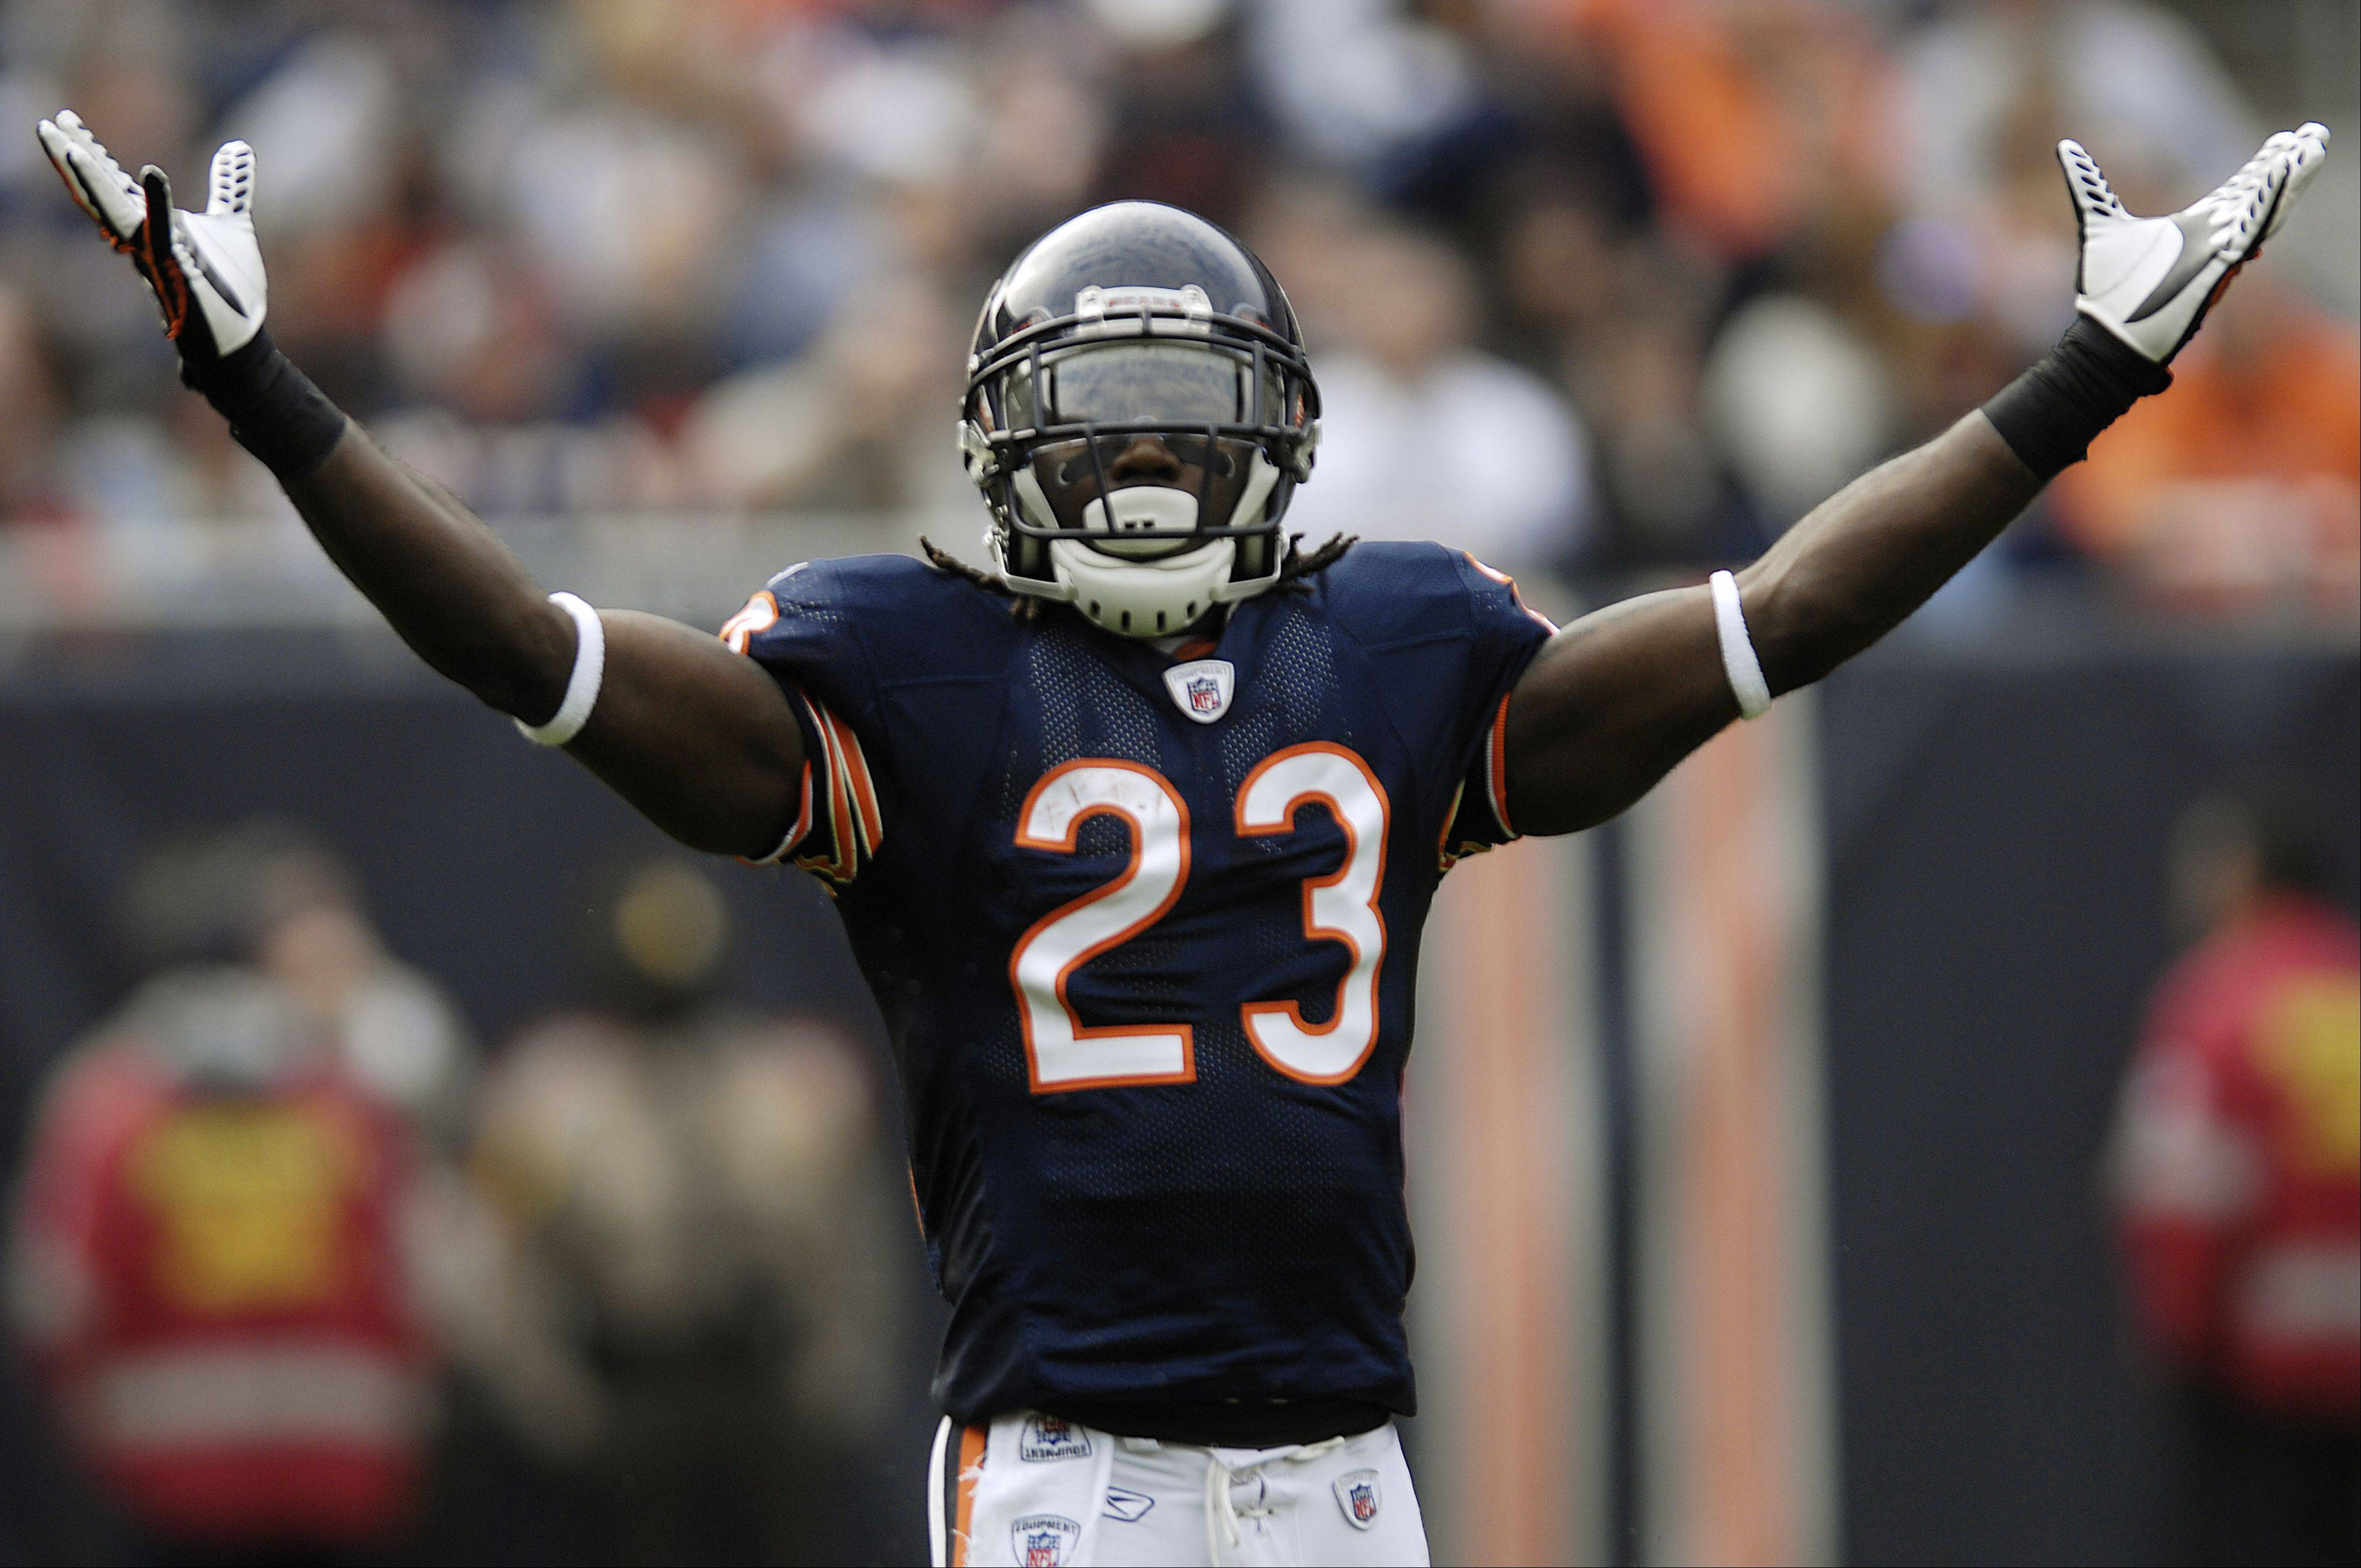 The Bears� Devin Hester is expected to return to action Sunday after being sidelined with a concussion.